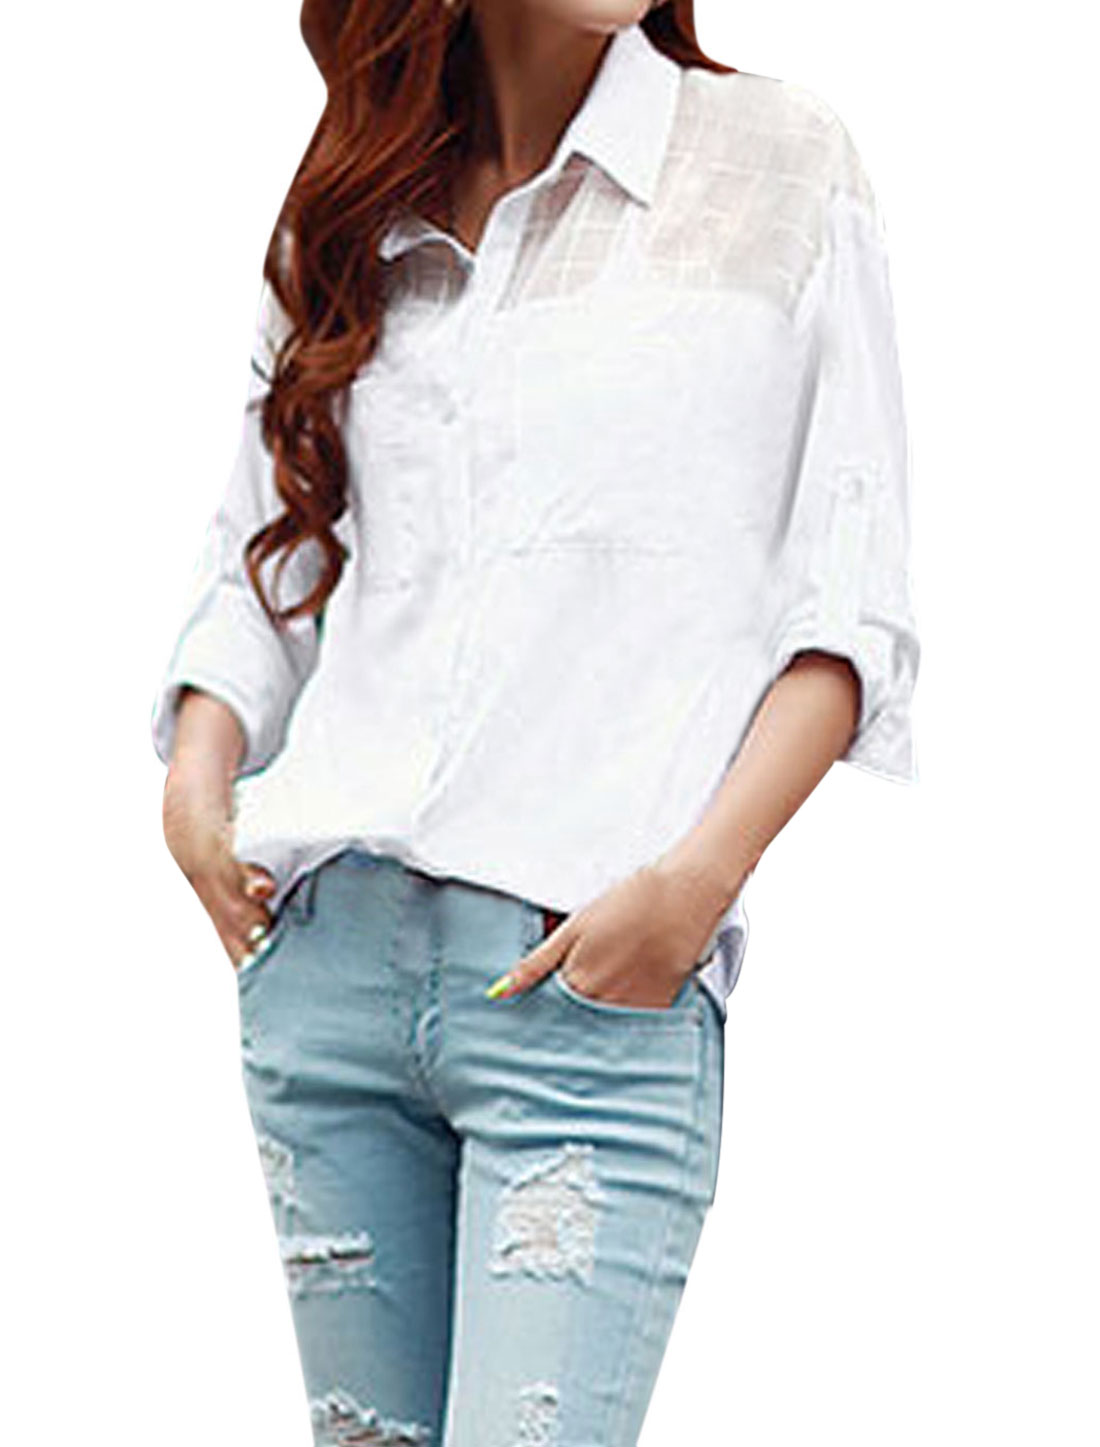 Lady Long Batwing Sleeve Cuffed Sheerness Detail Top Shirt White S